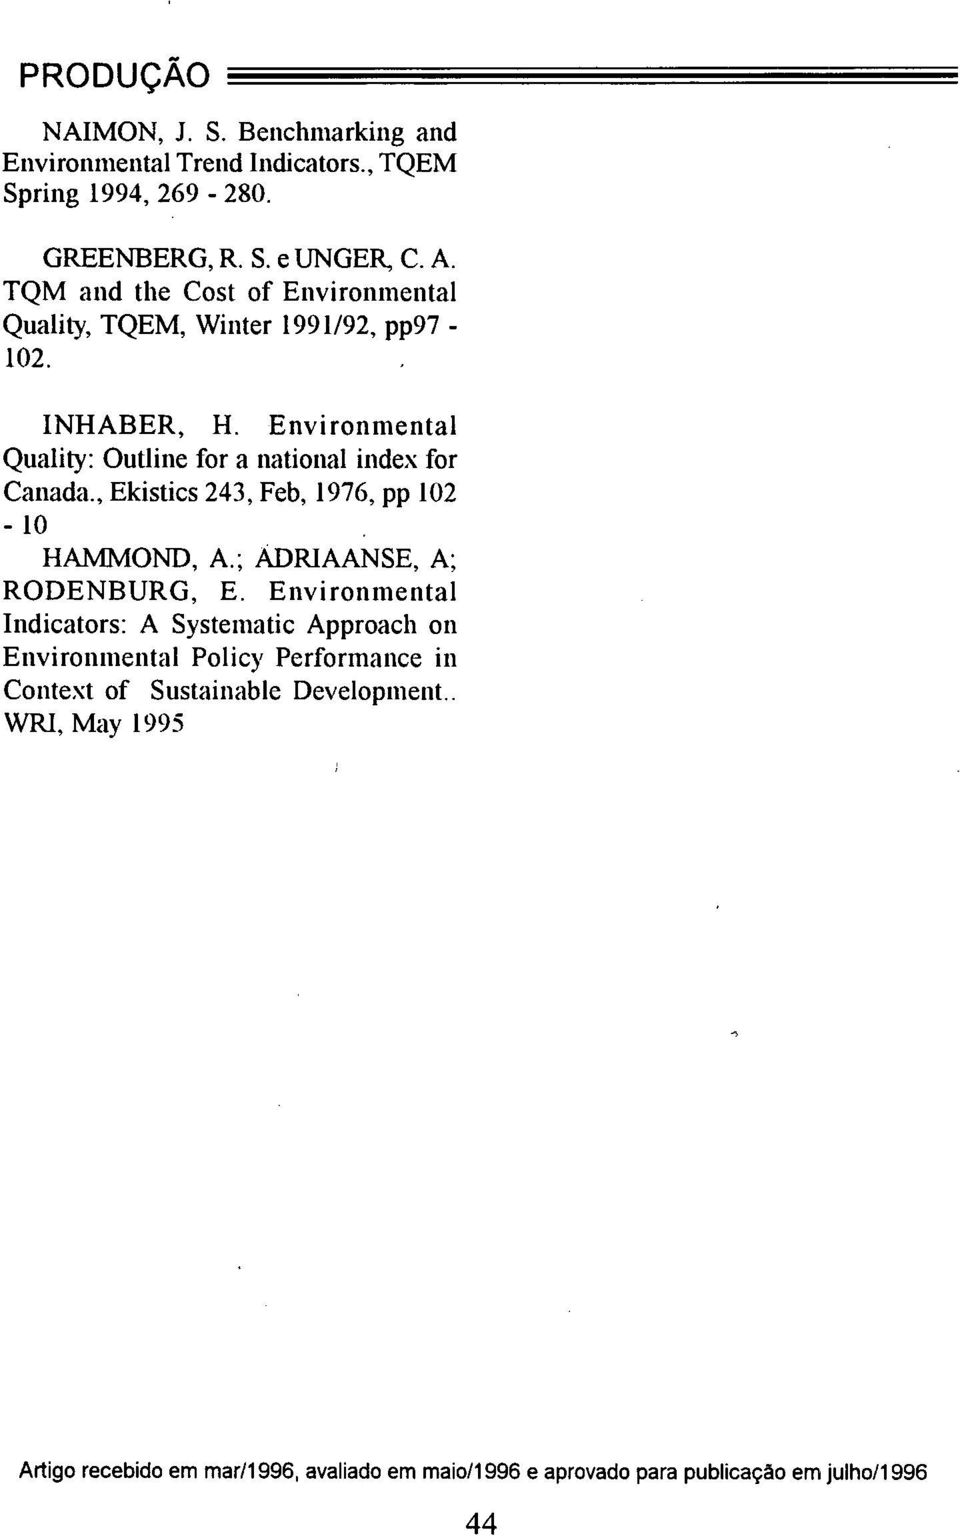 Environmental Quality: Outline for a national index for Canada., Ekistics 243, Feb, 1976, pp 102-10 HAMMOND, A.; ÁDRIAANSE, A; RODENBURG, E.